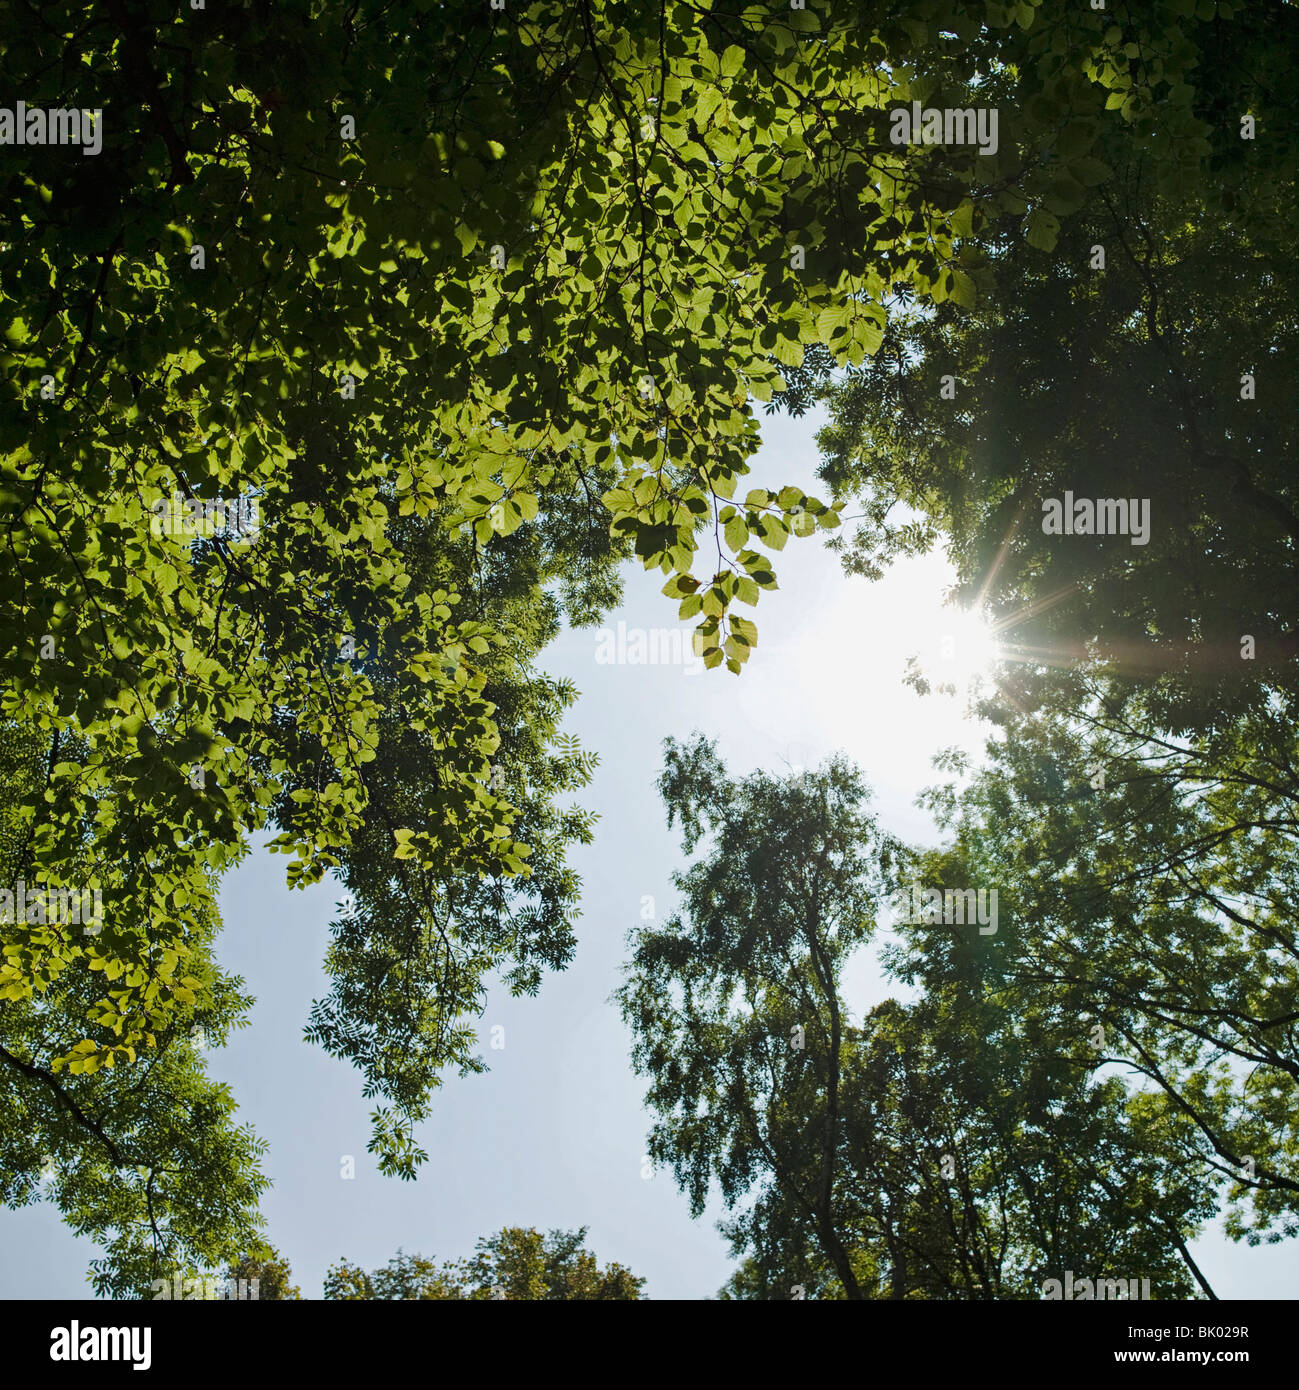 Sun shinning trough leafs - Stock Image